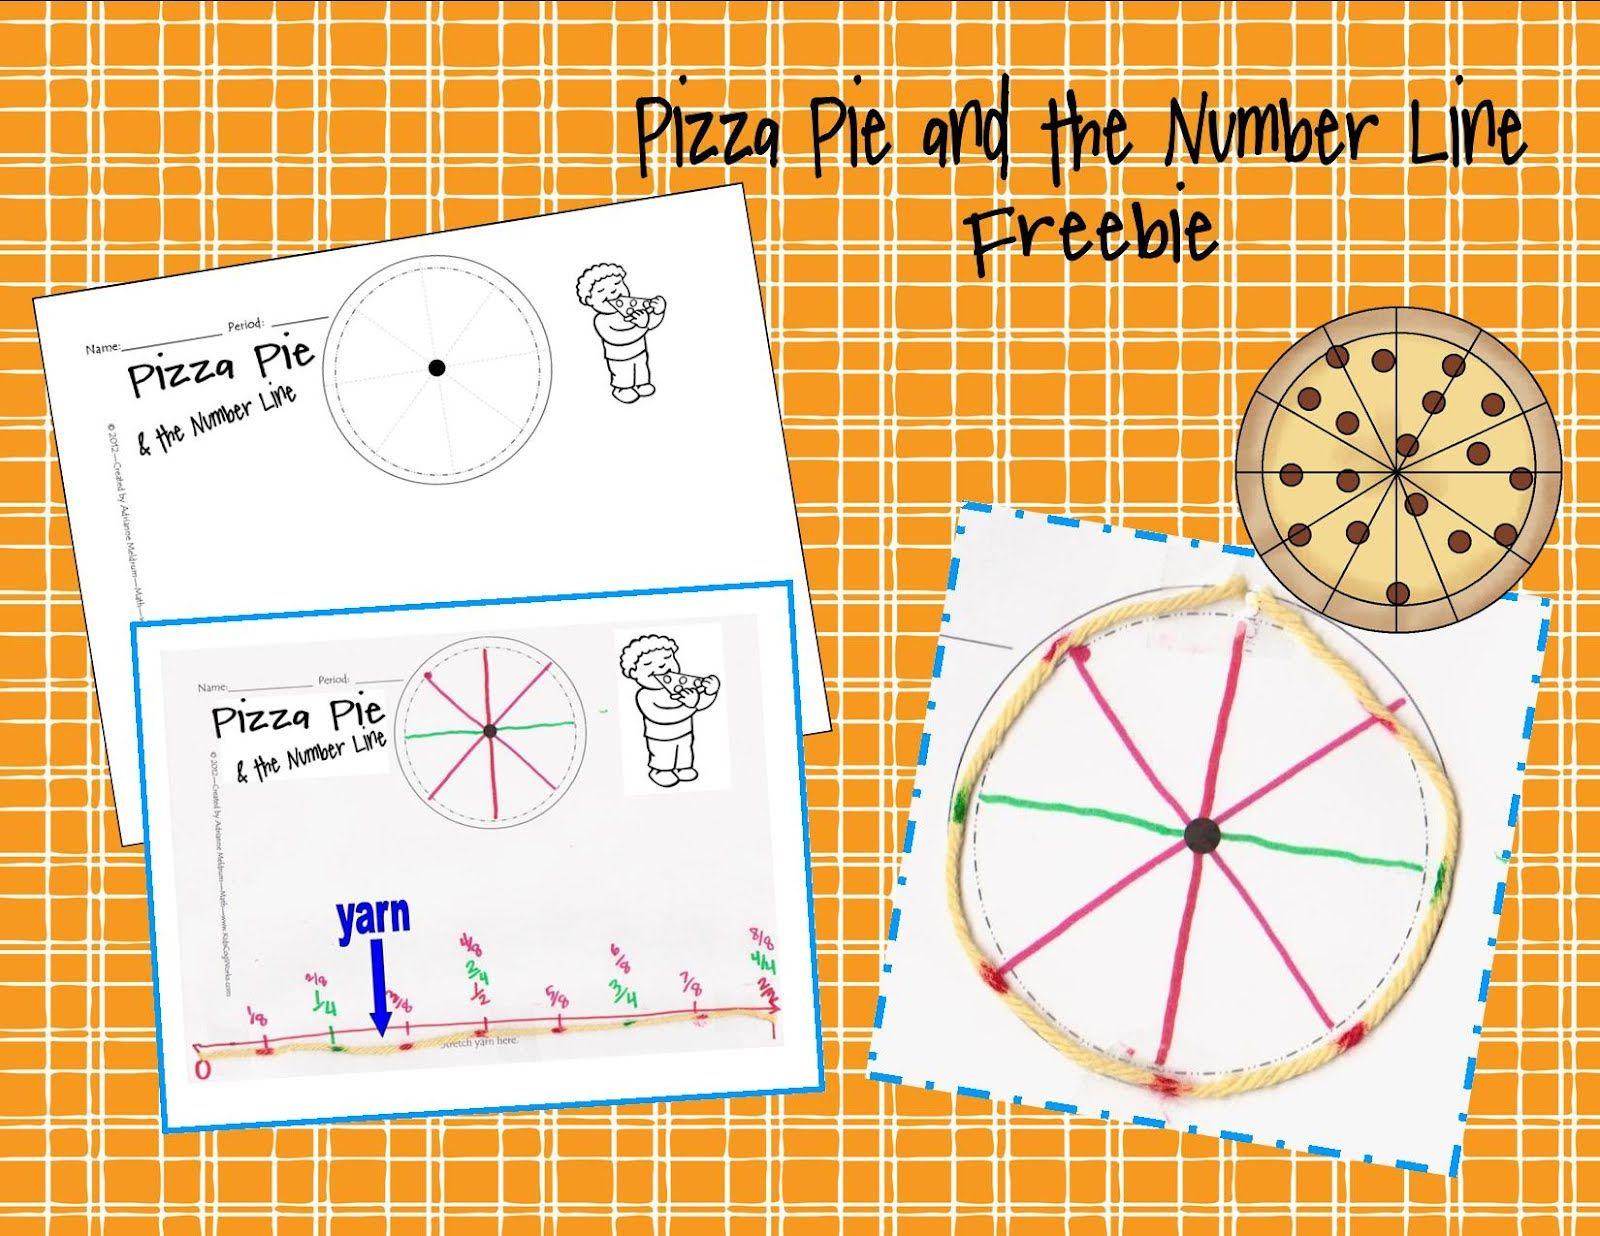 A Visual Way To Make A Connection Between Pie Fractions